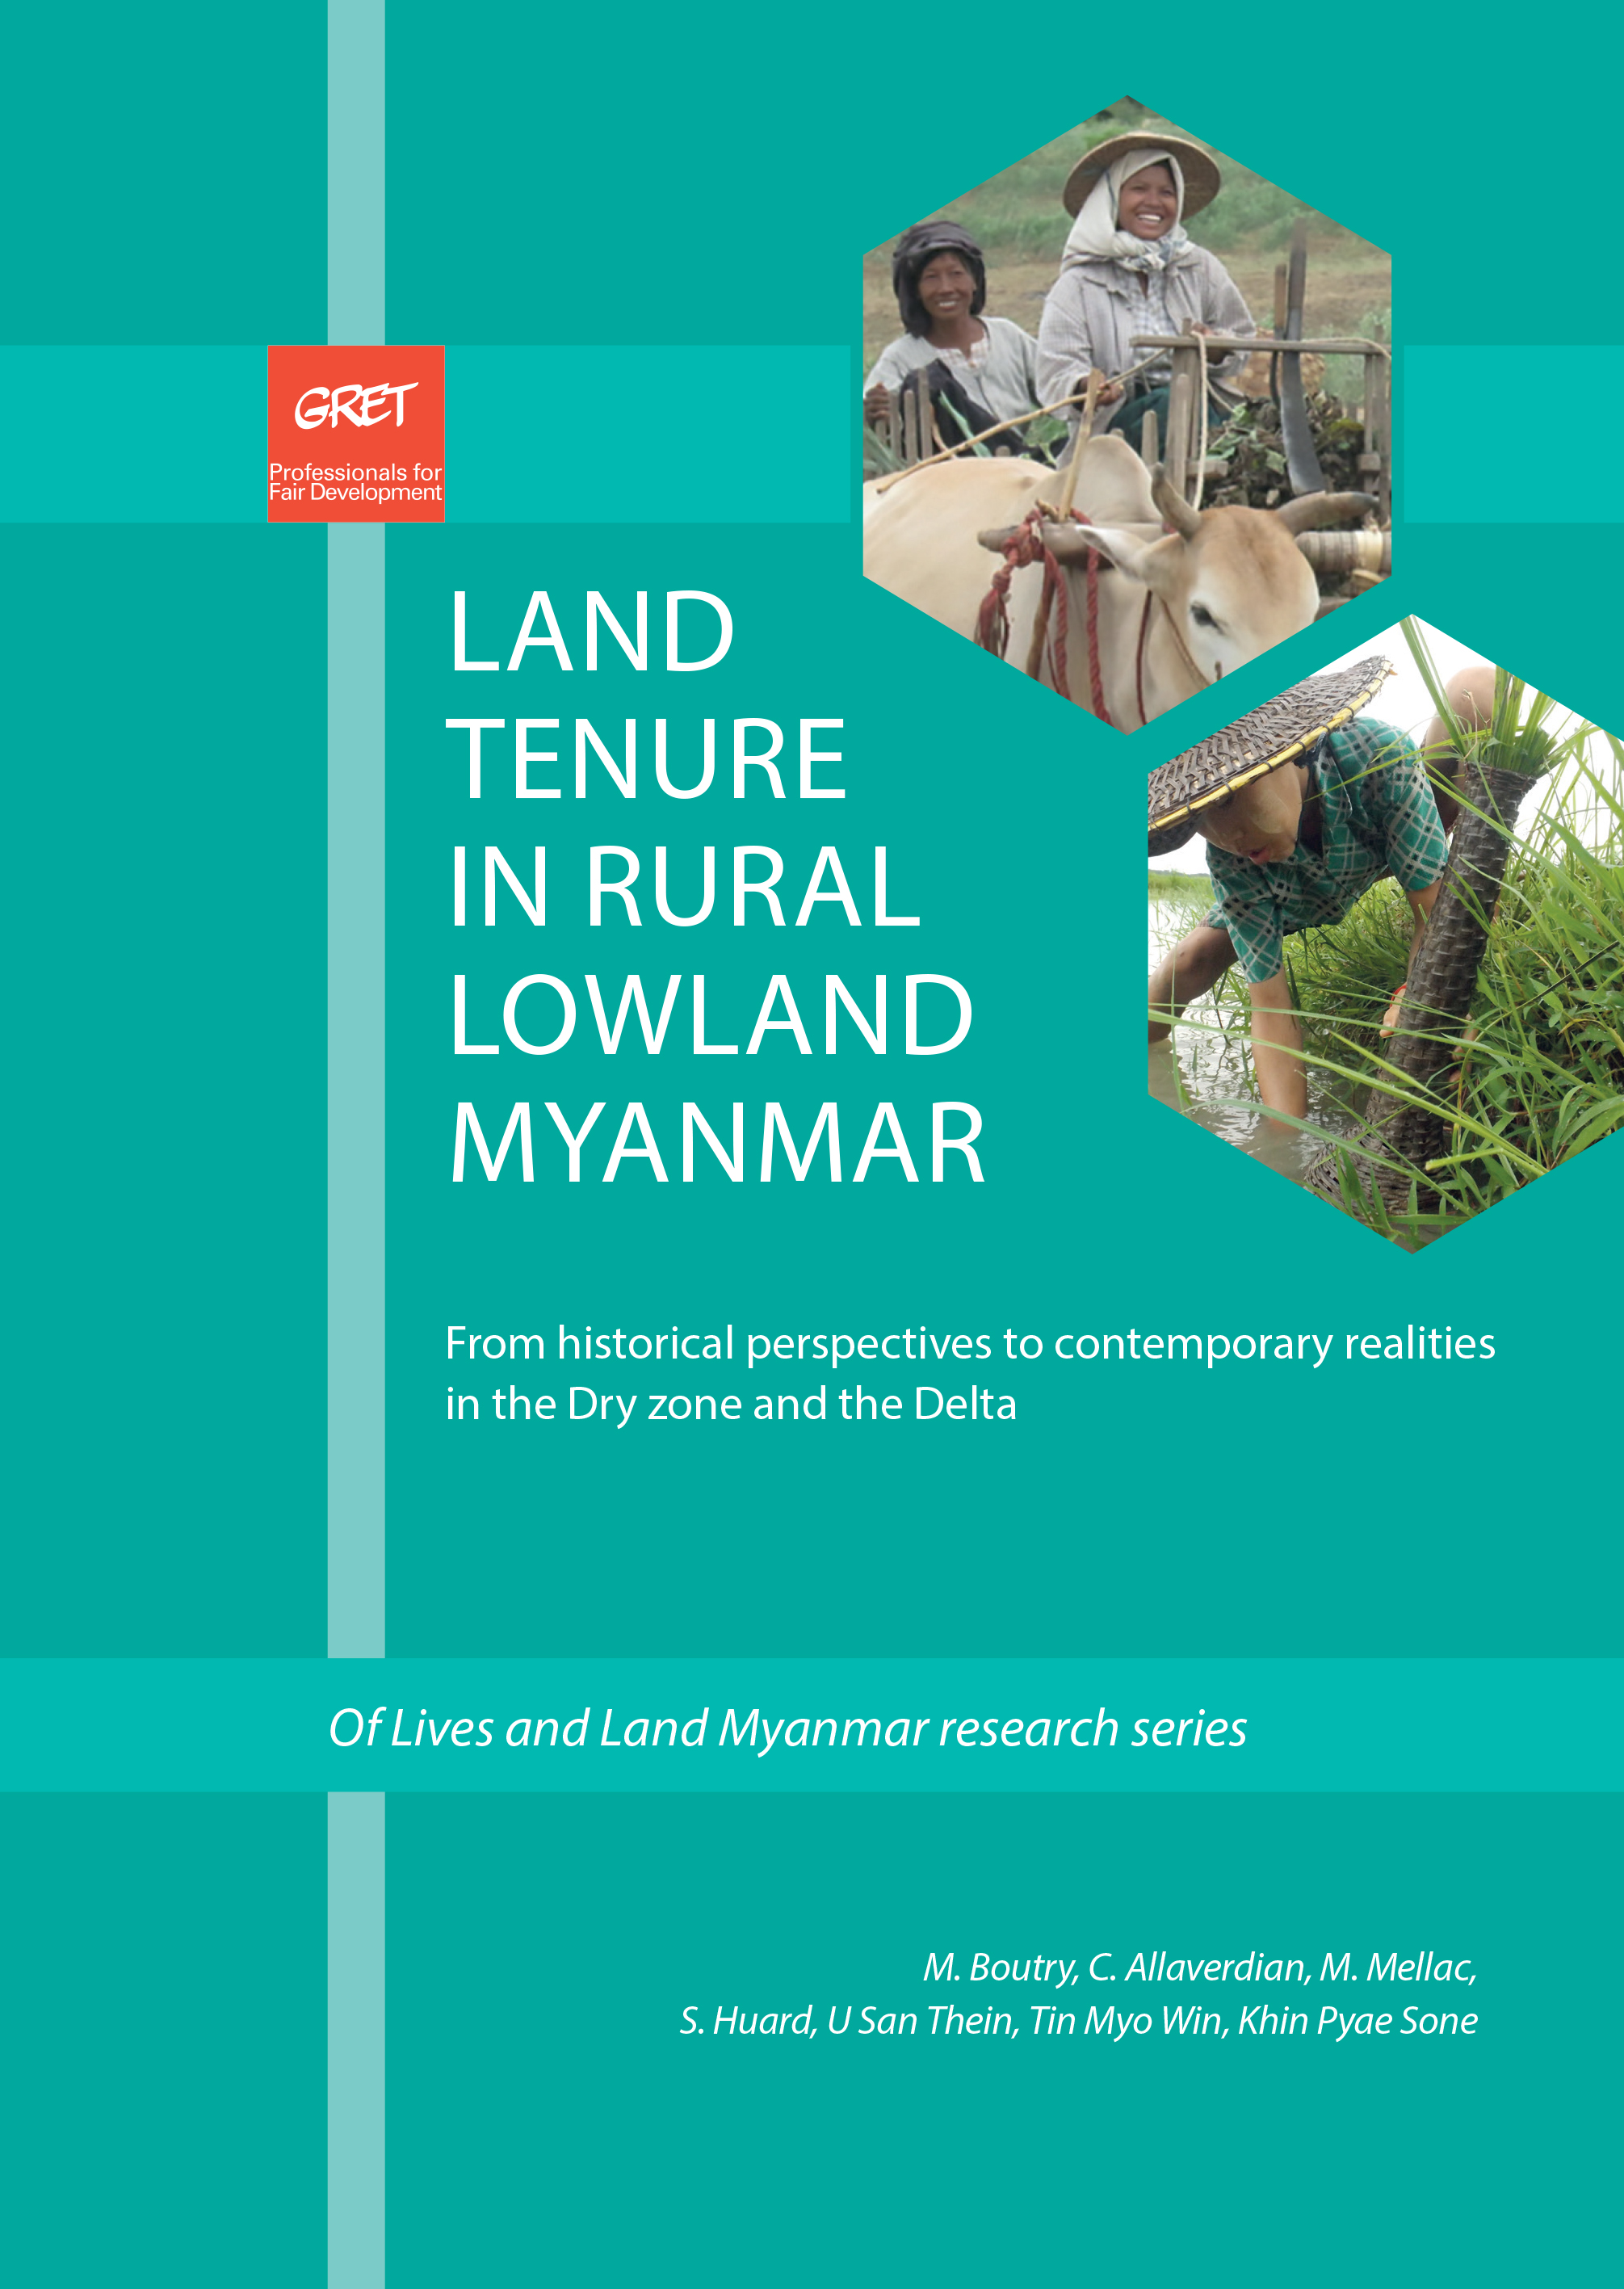 Land tenure in rural low land Myanmar